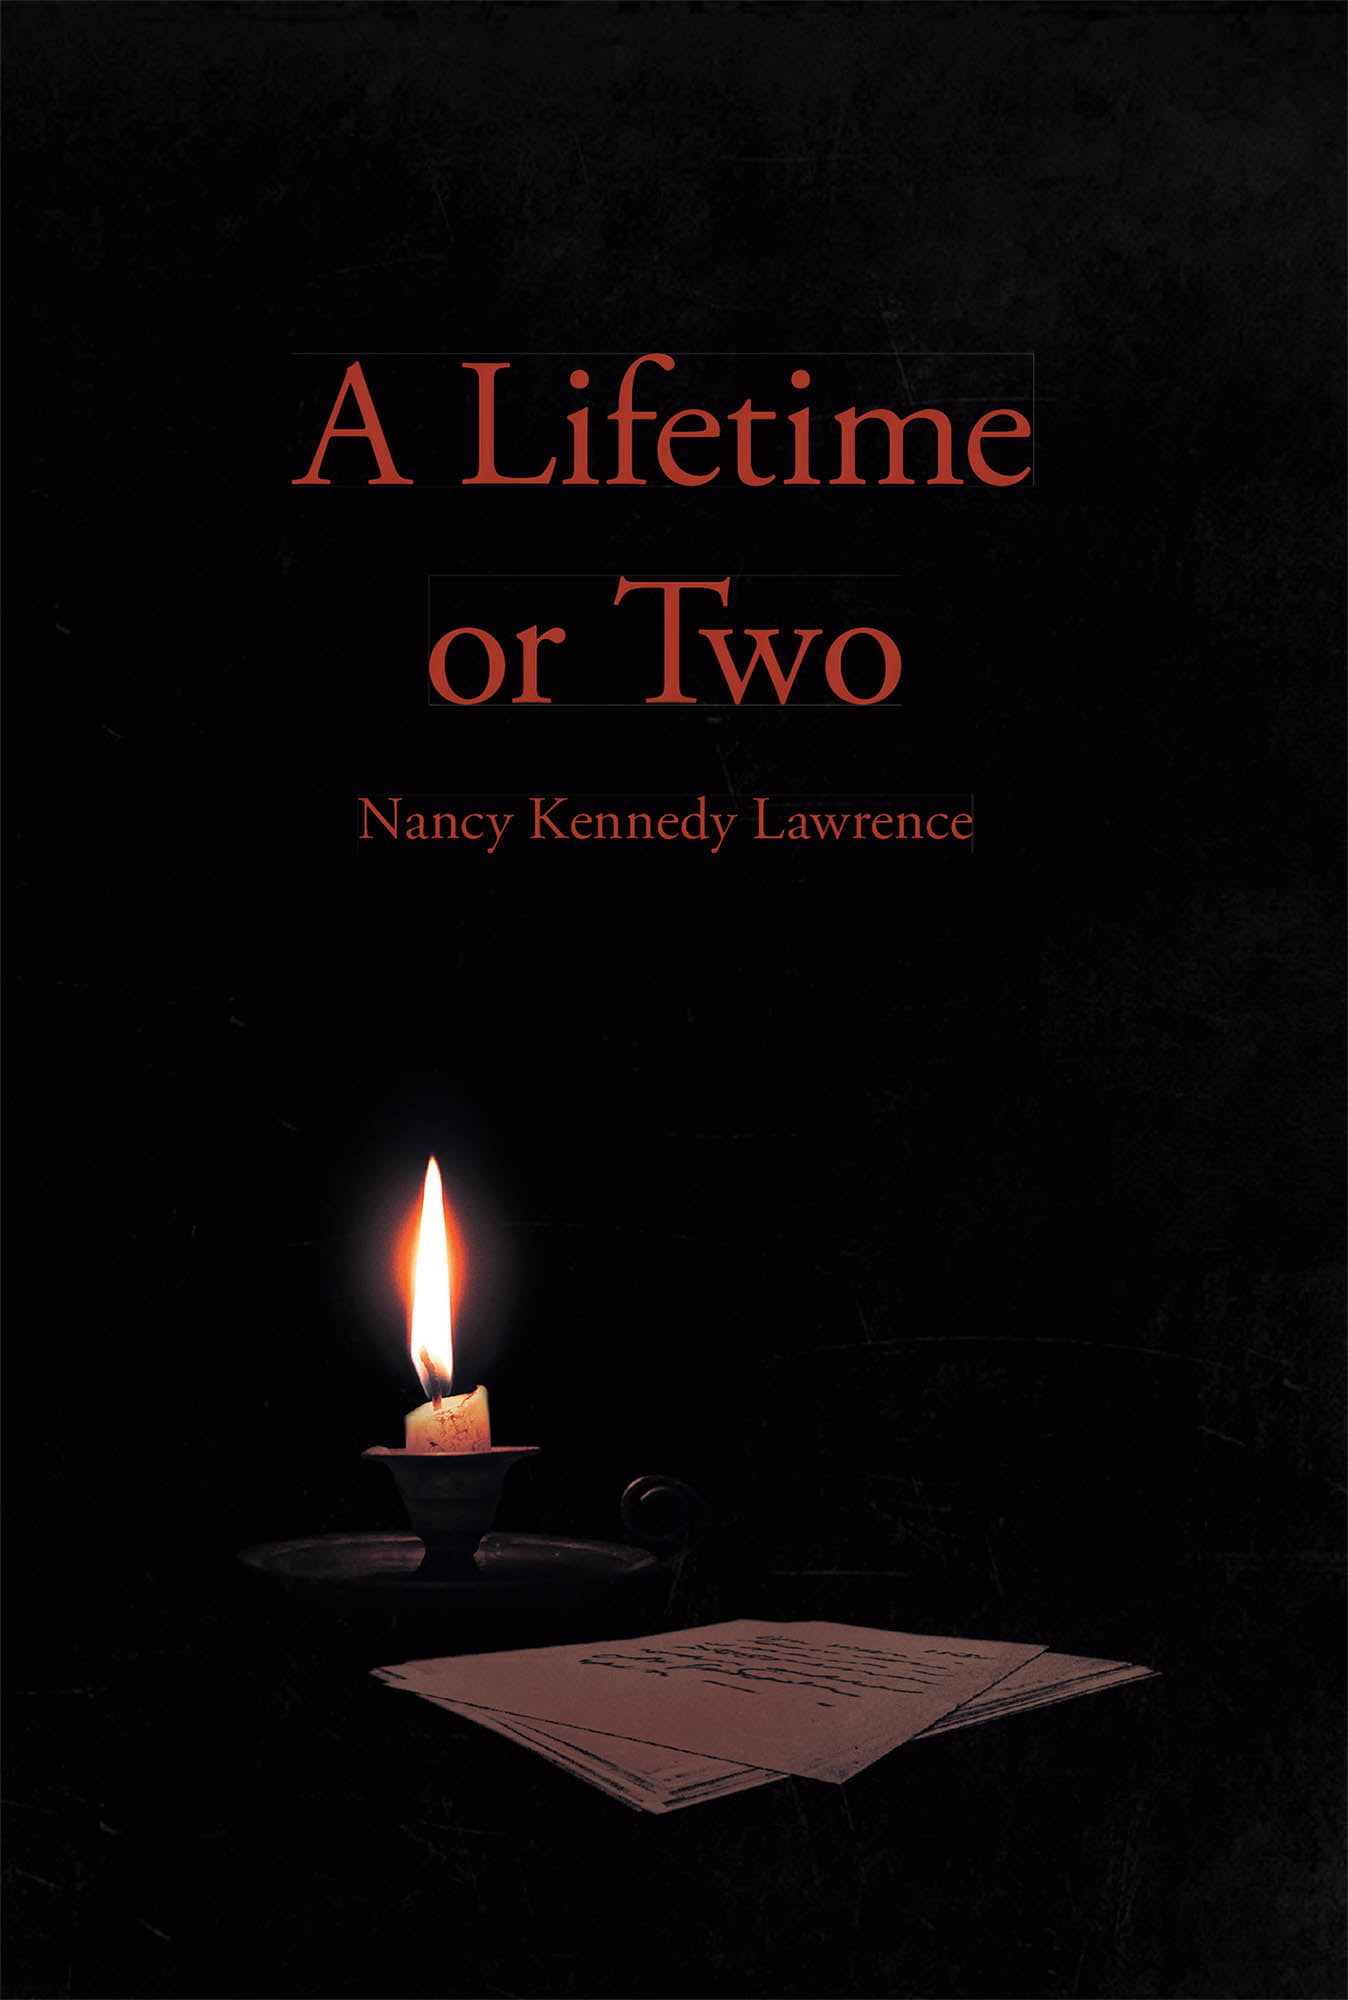 Nancy Kennedy Lawrence's New Book 'A Lifetime or Two' is a Well-Written Tale That Unravels the Life, Lineage, and Bonds That Strengthen One Irish Family